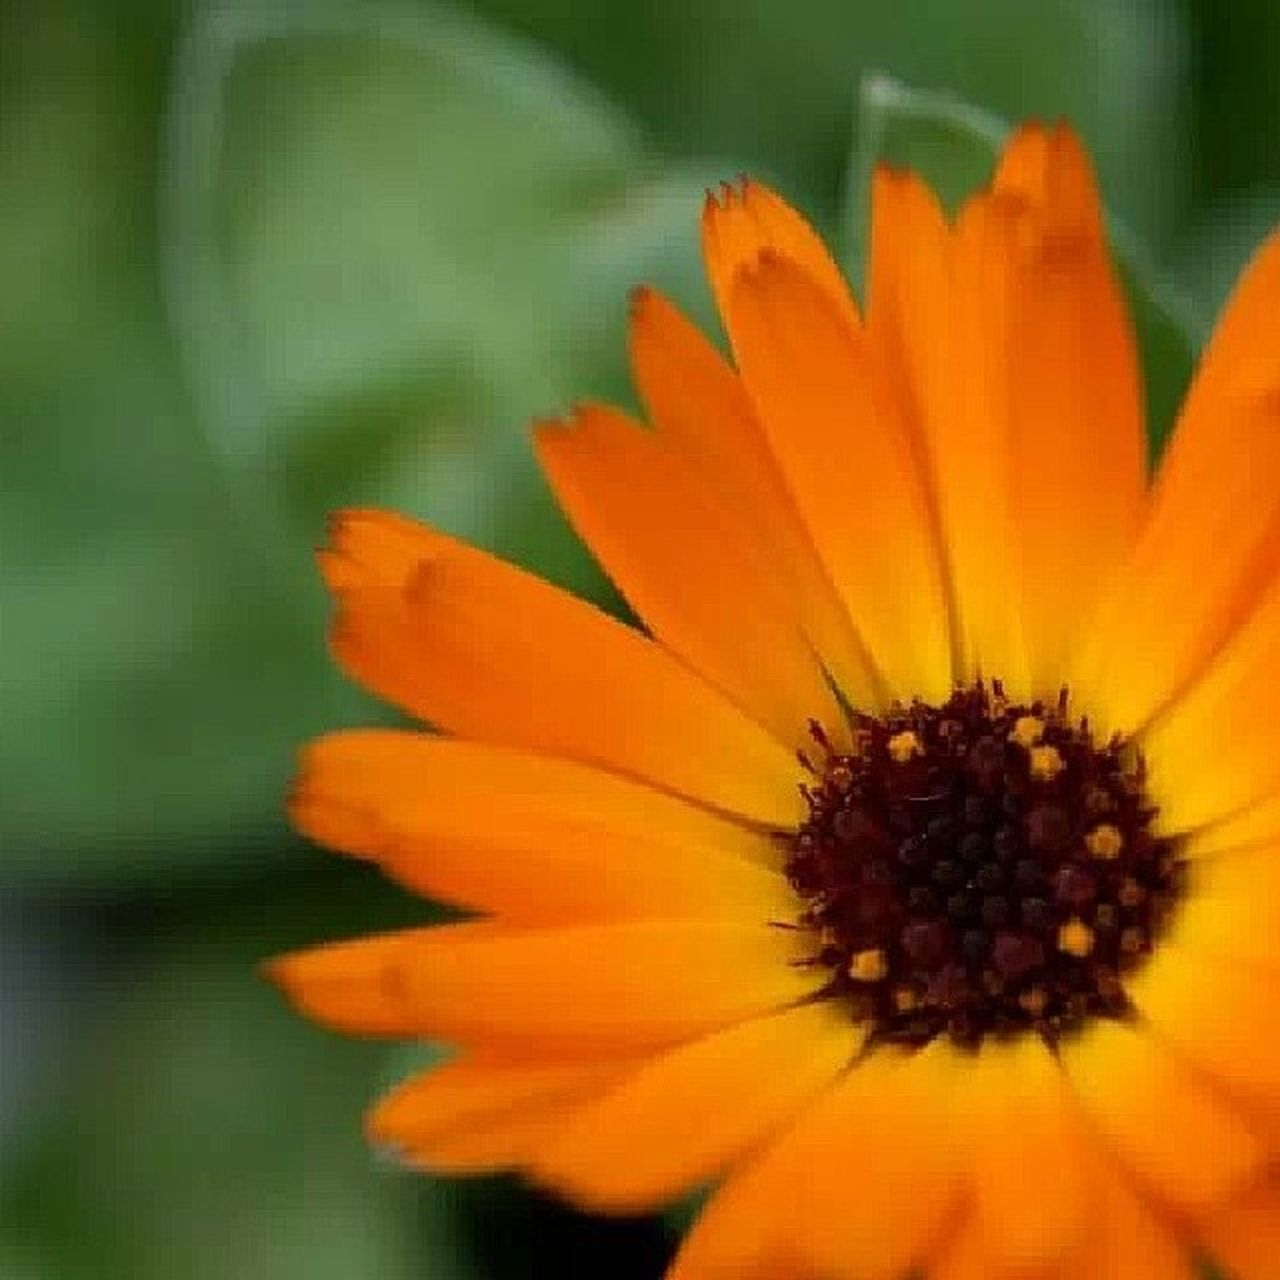 flower, petal, flower head, fragility, beauty in nature, freshness, nature, plant, pollen, growth, orange color, close-up, no people, blooming, day, outdoors